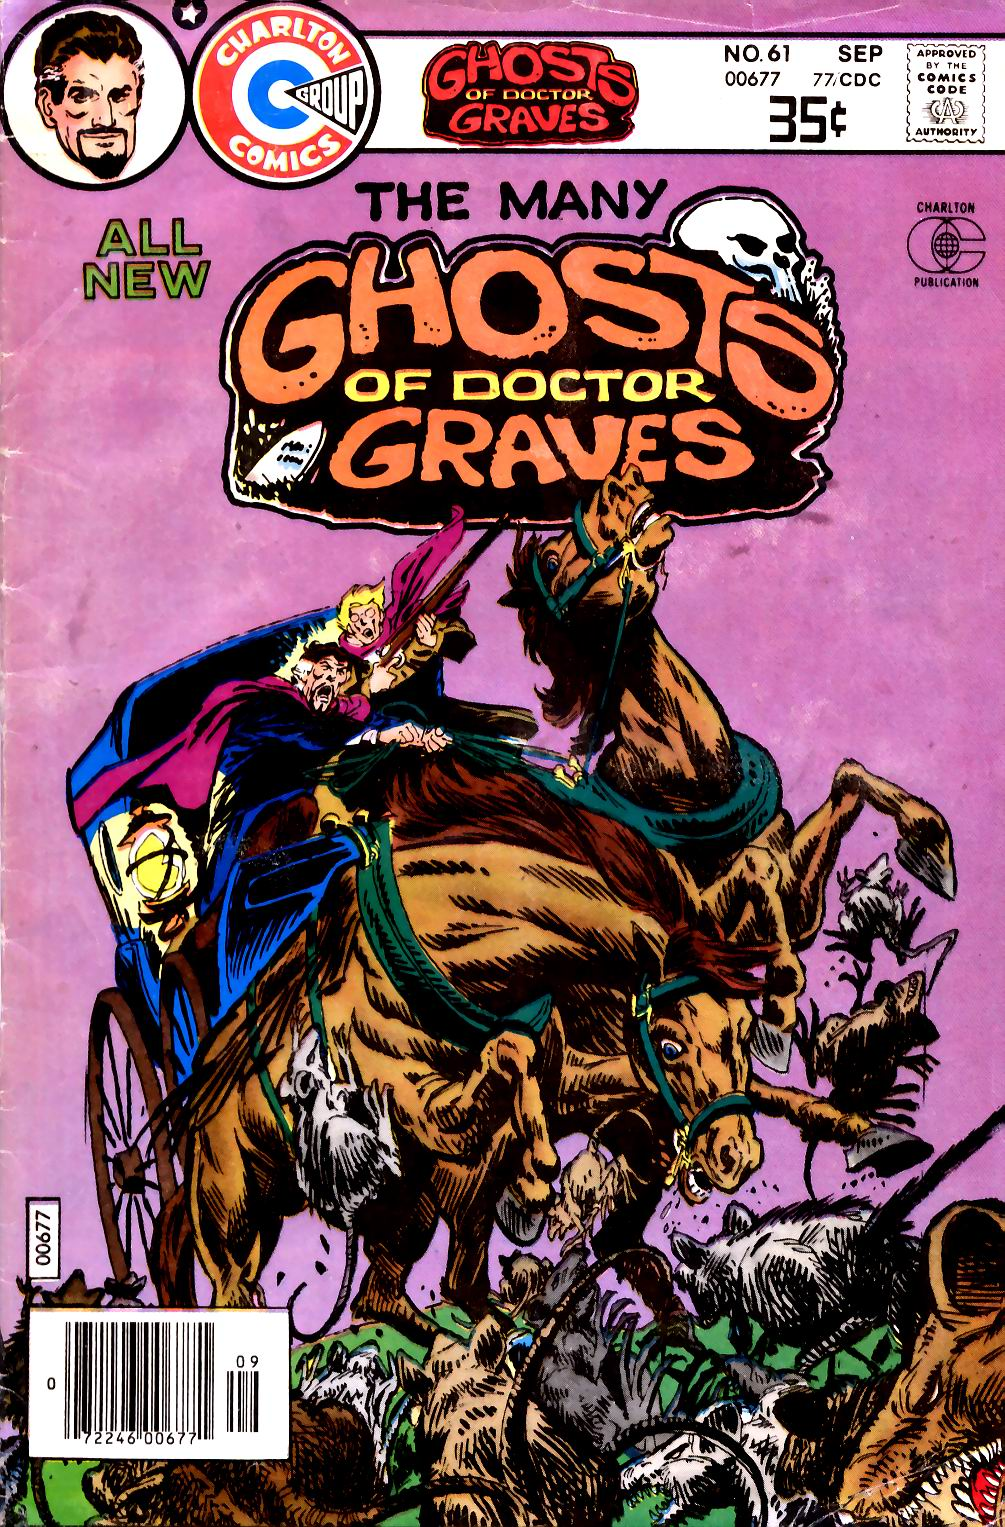 The Bronze Age Of Blogs Dr Graves In Hellfire Club Hi Hansithe Codes Do Point To An Electrical Problem With Transfer Another Adventure For Charltons Occult Expert M T Never Stops Being Funny That Mixing Lovecraft Hammer As Only Tom Can